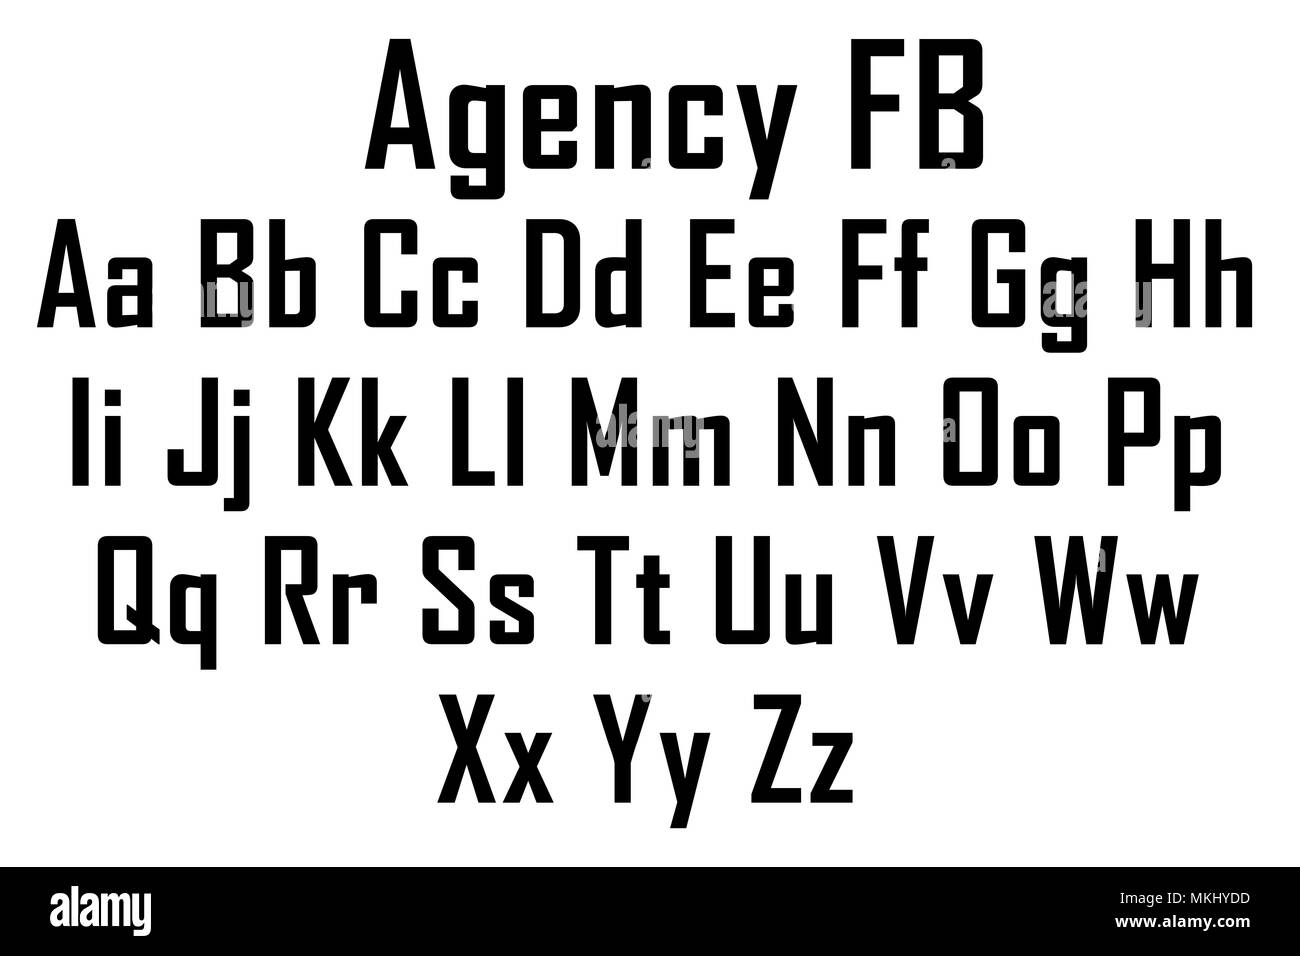 Agency FB font Stock Photo: 184176873 - Alamy